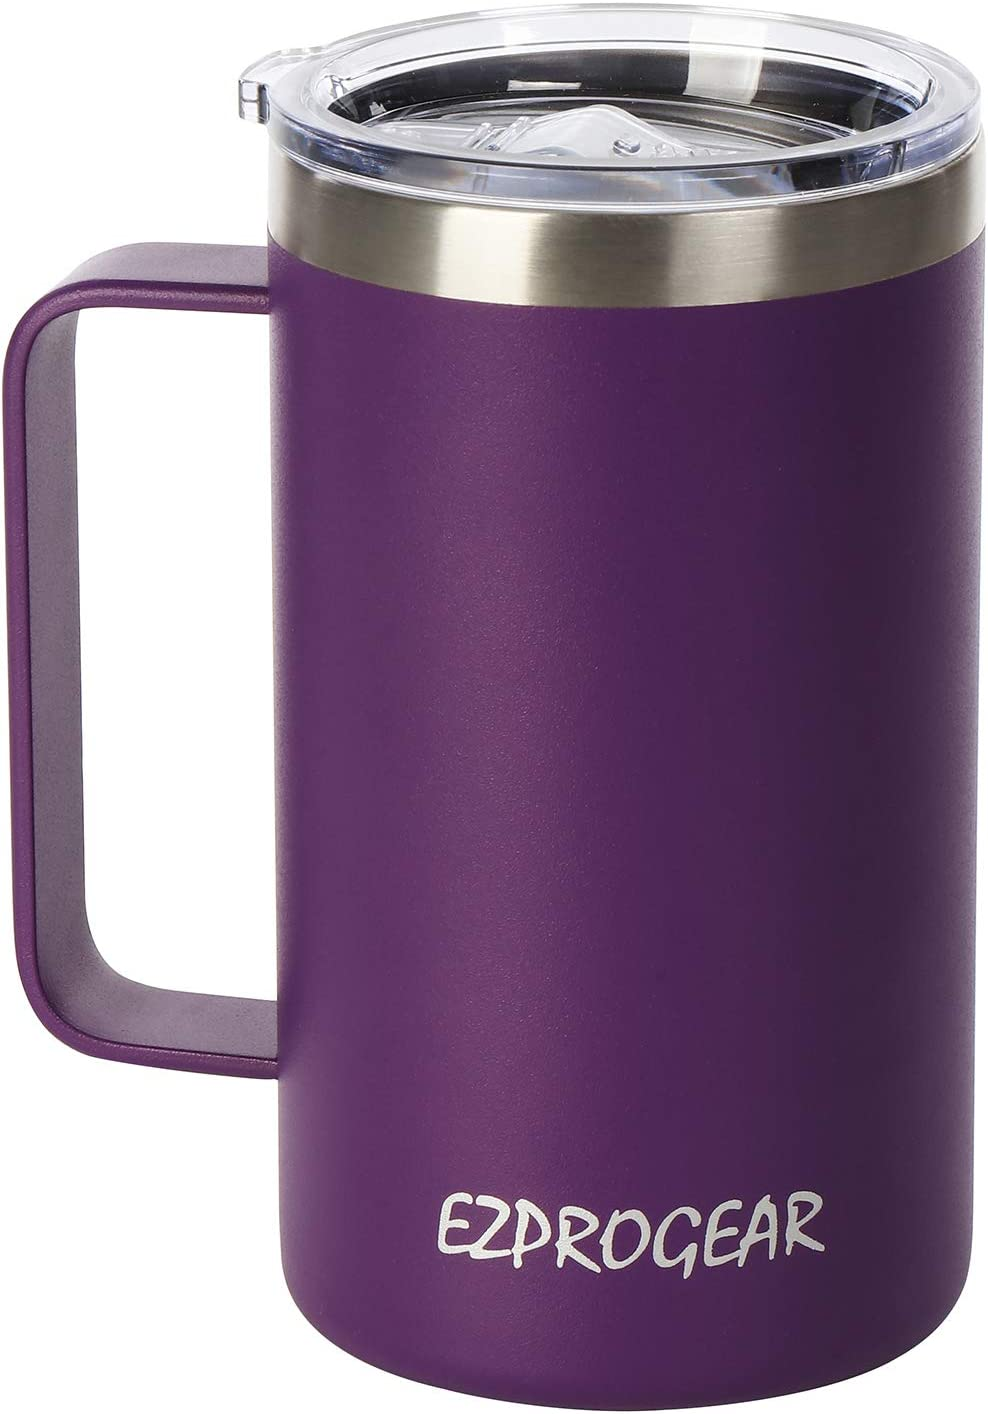 Ezprogear Stainless Steel 24 oz Coffee Mug Purple Grape Beer Tumbler Double Wall Vacuum Insulated with Handle and Lid (24 oz, Grape)